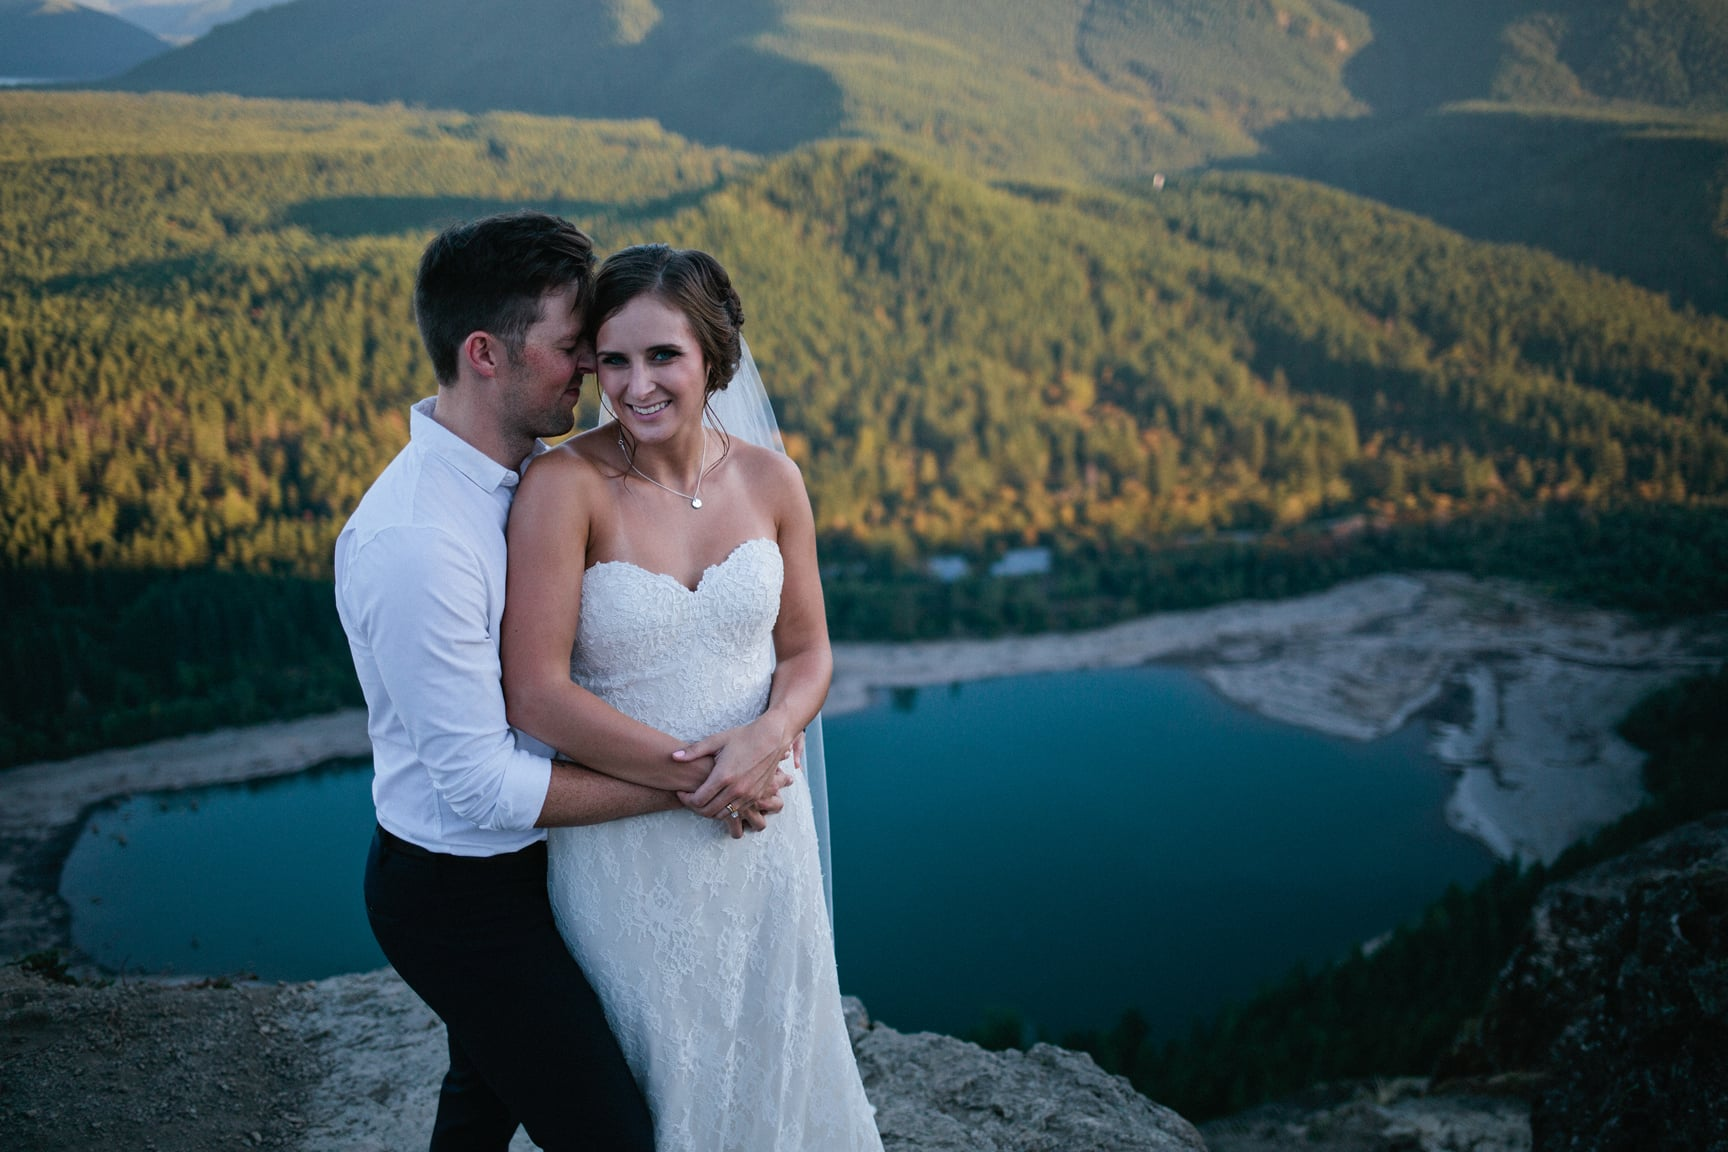 Bride and groom at Rattlesnake Ledge by Alexandra Knight Photography.